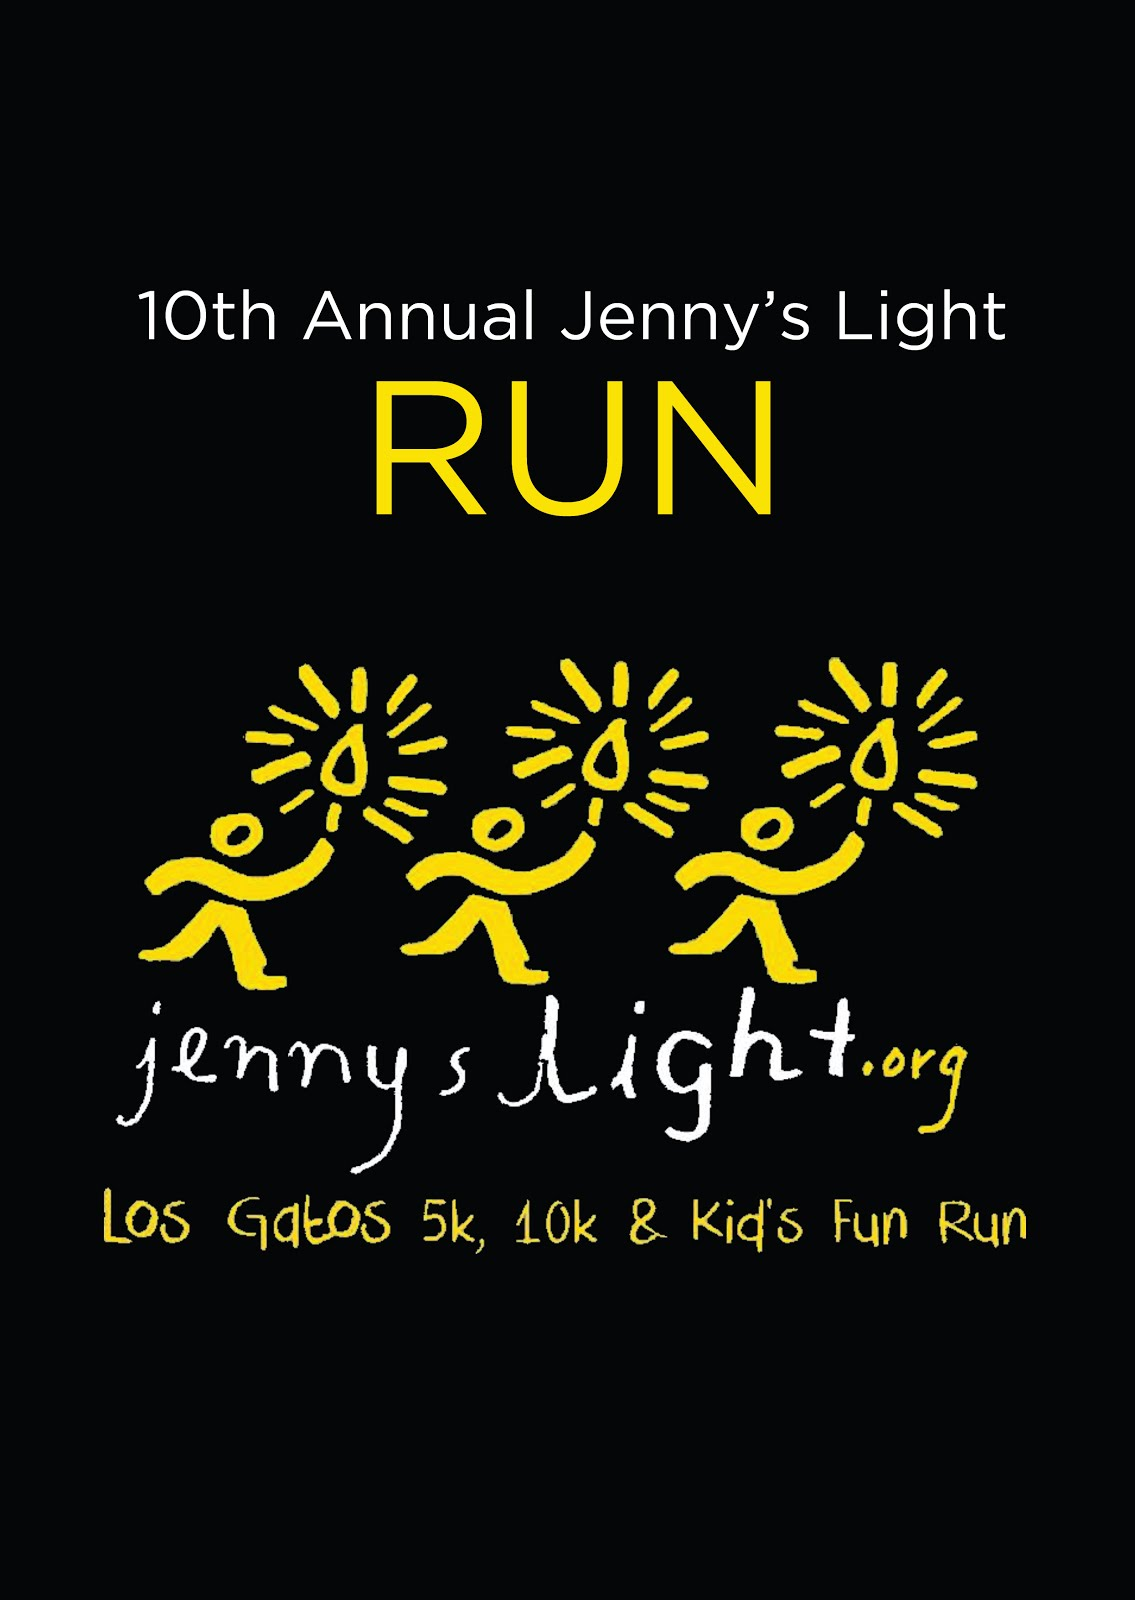 Join us on Saturday, May 12th at Vasona Park for the 10th Annual Jenny's Light 1k, 5k, and 10k!